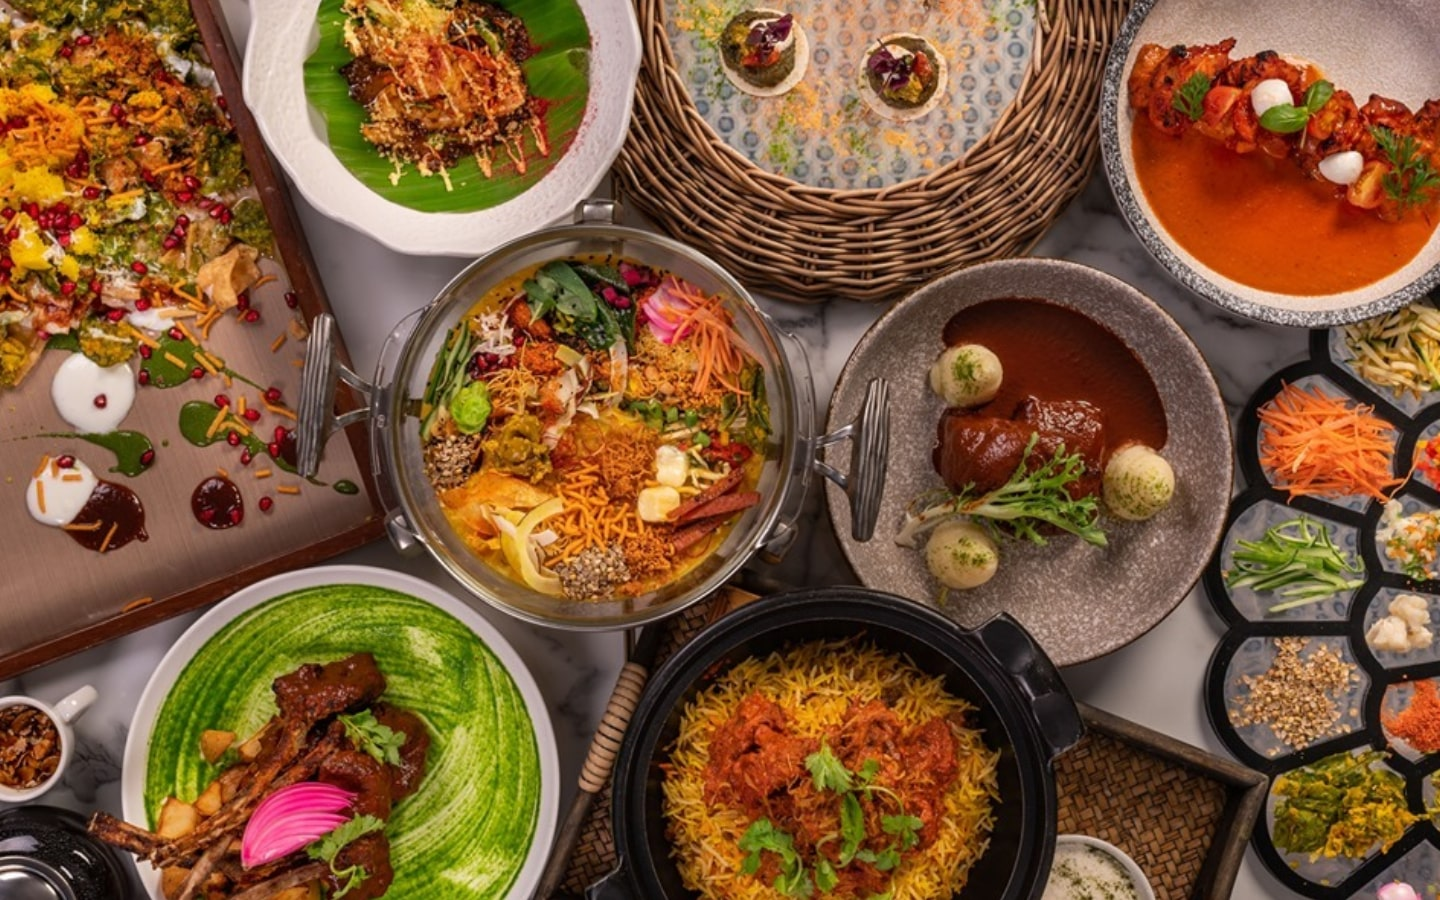 Dishes on a table from Tresind, one of the top fine dining Sheikh Zayed Road restaurants